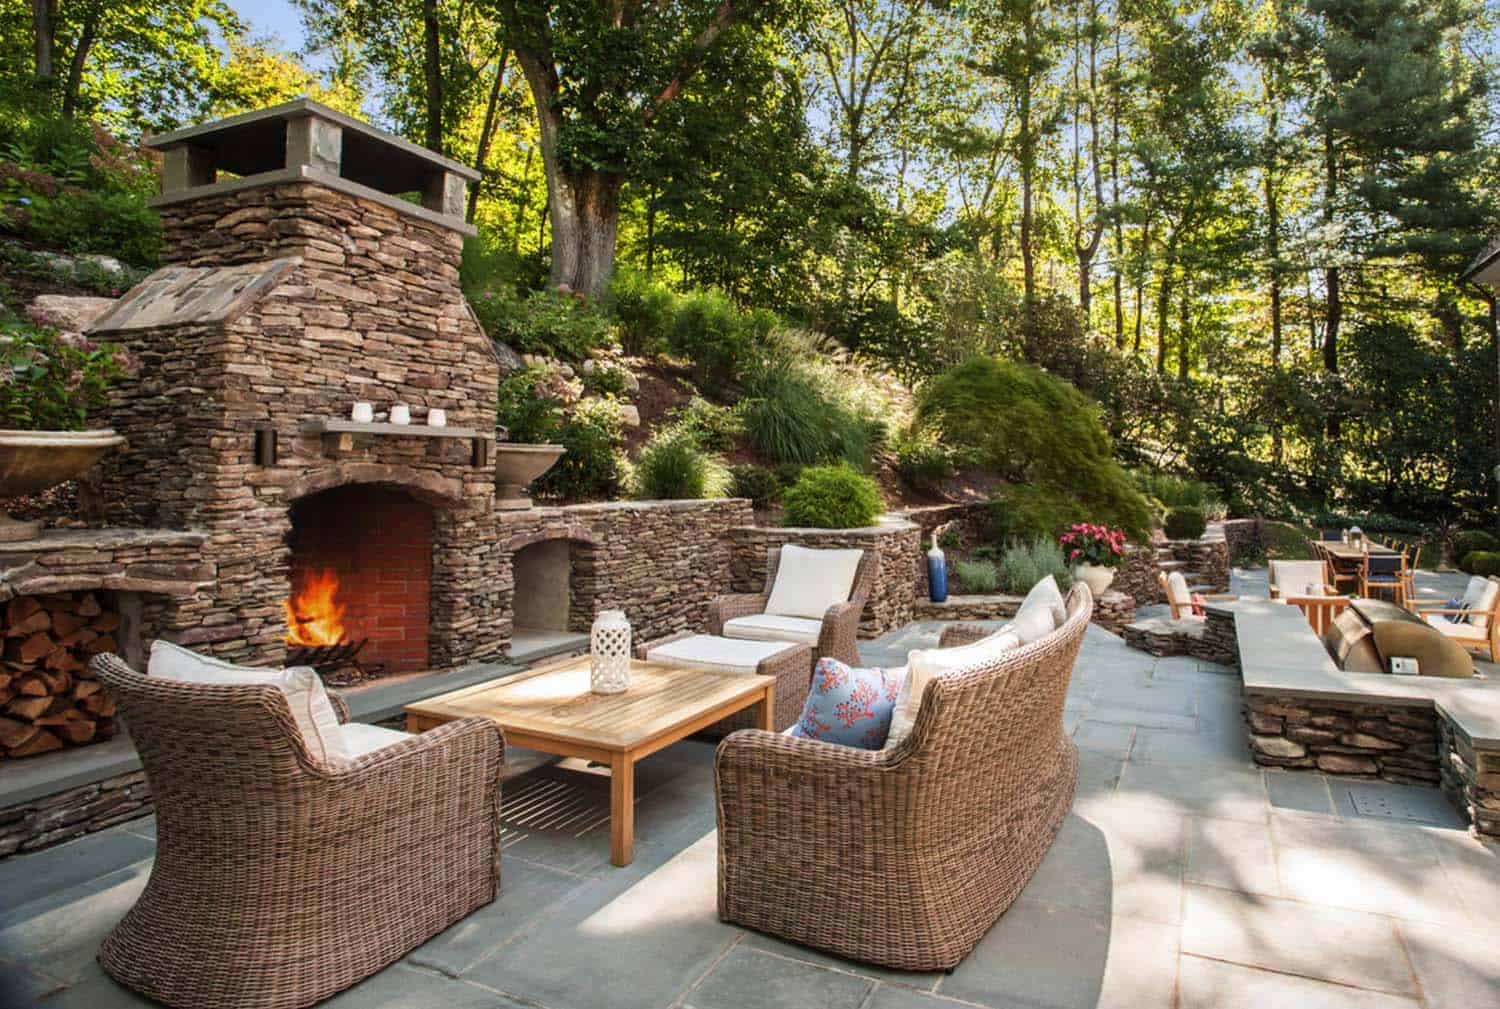 This Cozy Backyard Patio In Upstate New York Features A Fireplace With  Furniture From The Kingsley Bates Sag Harbor Collection.